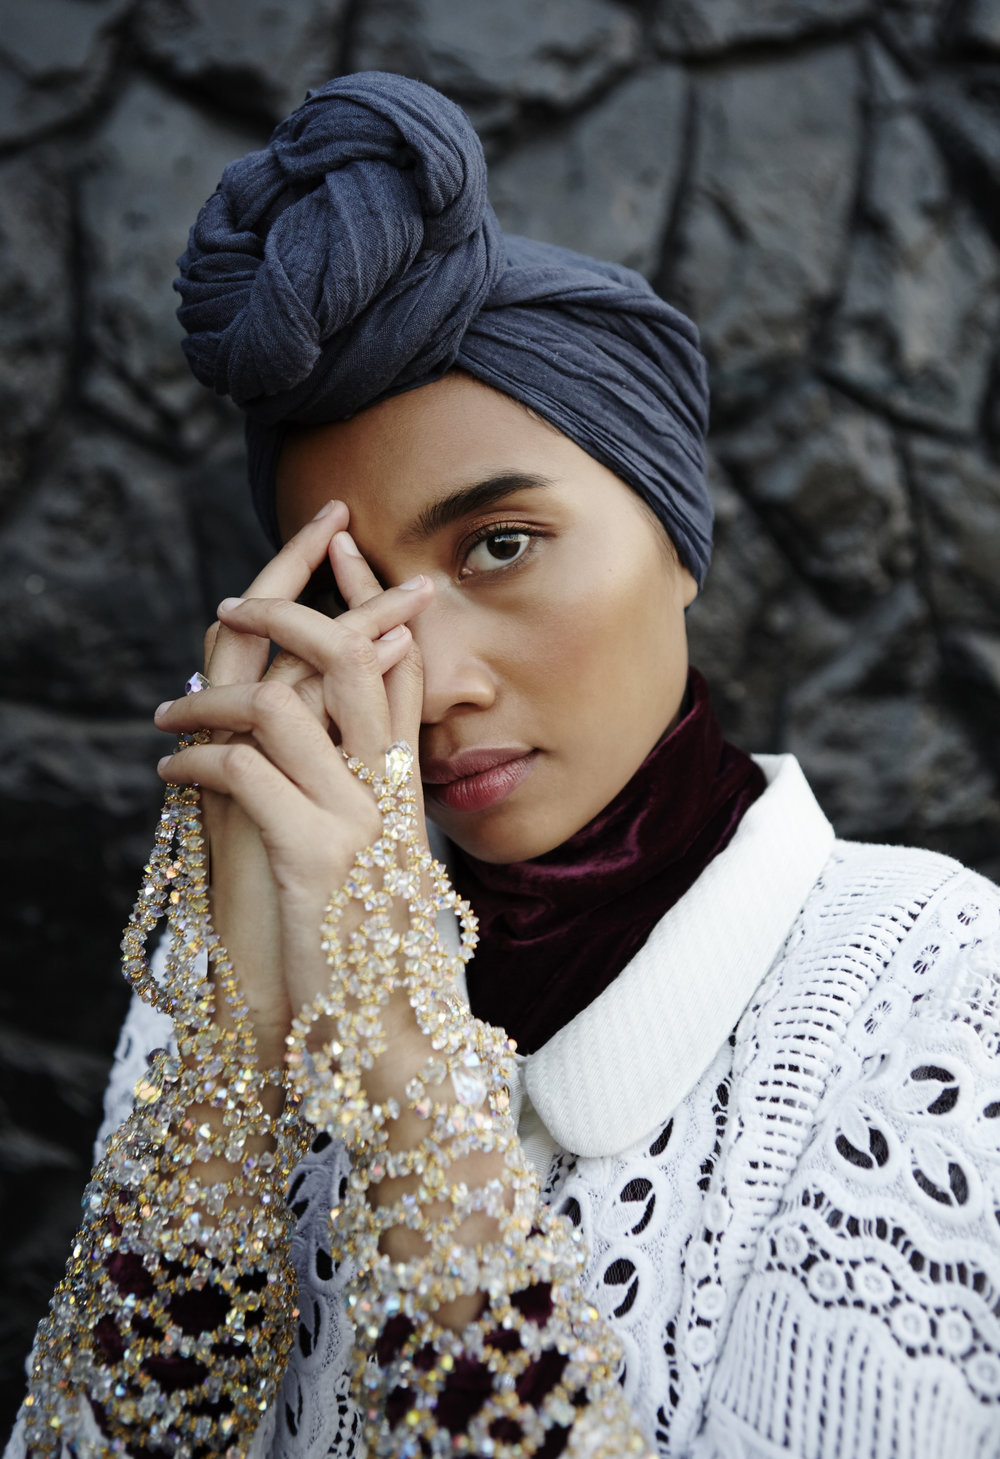 YUNA FOR VULKAN MAG  PHOTOGRAPHER: JASON BARBAGELOTT